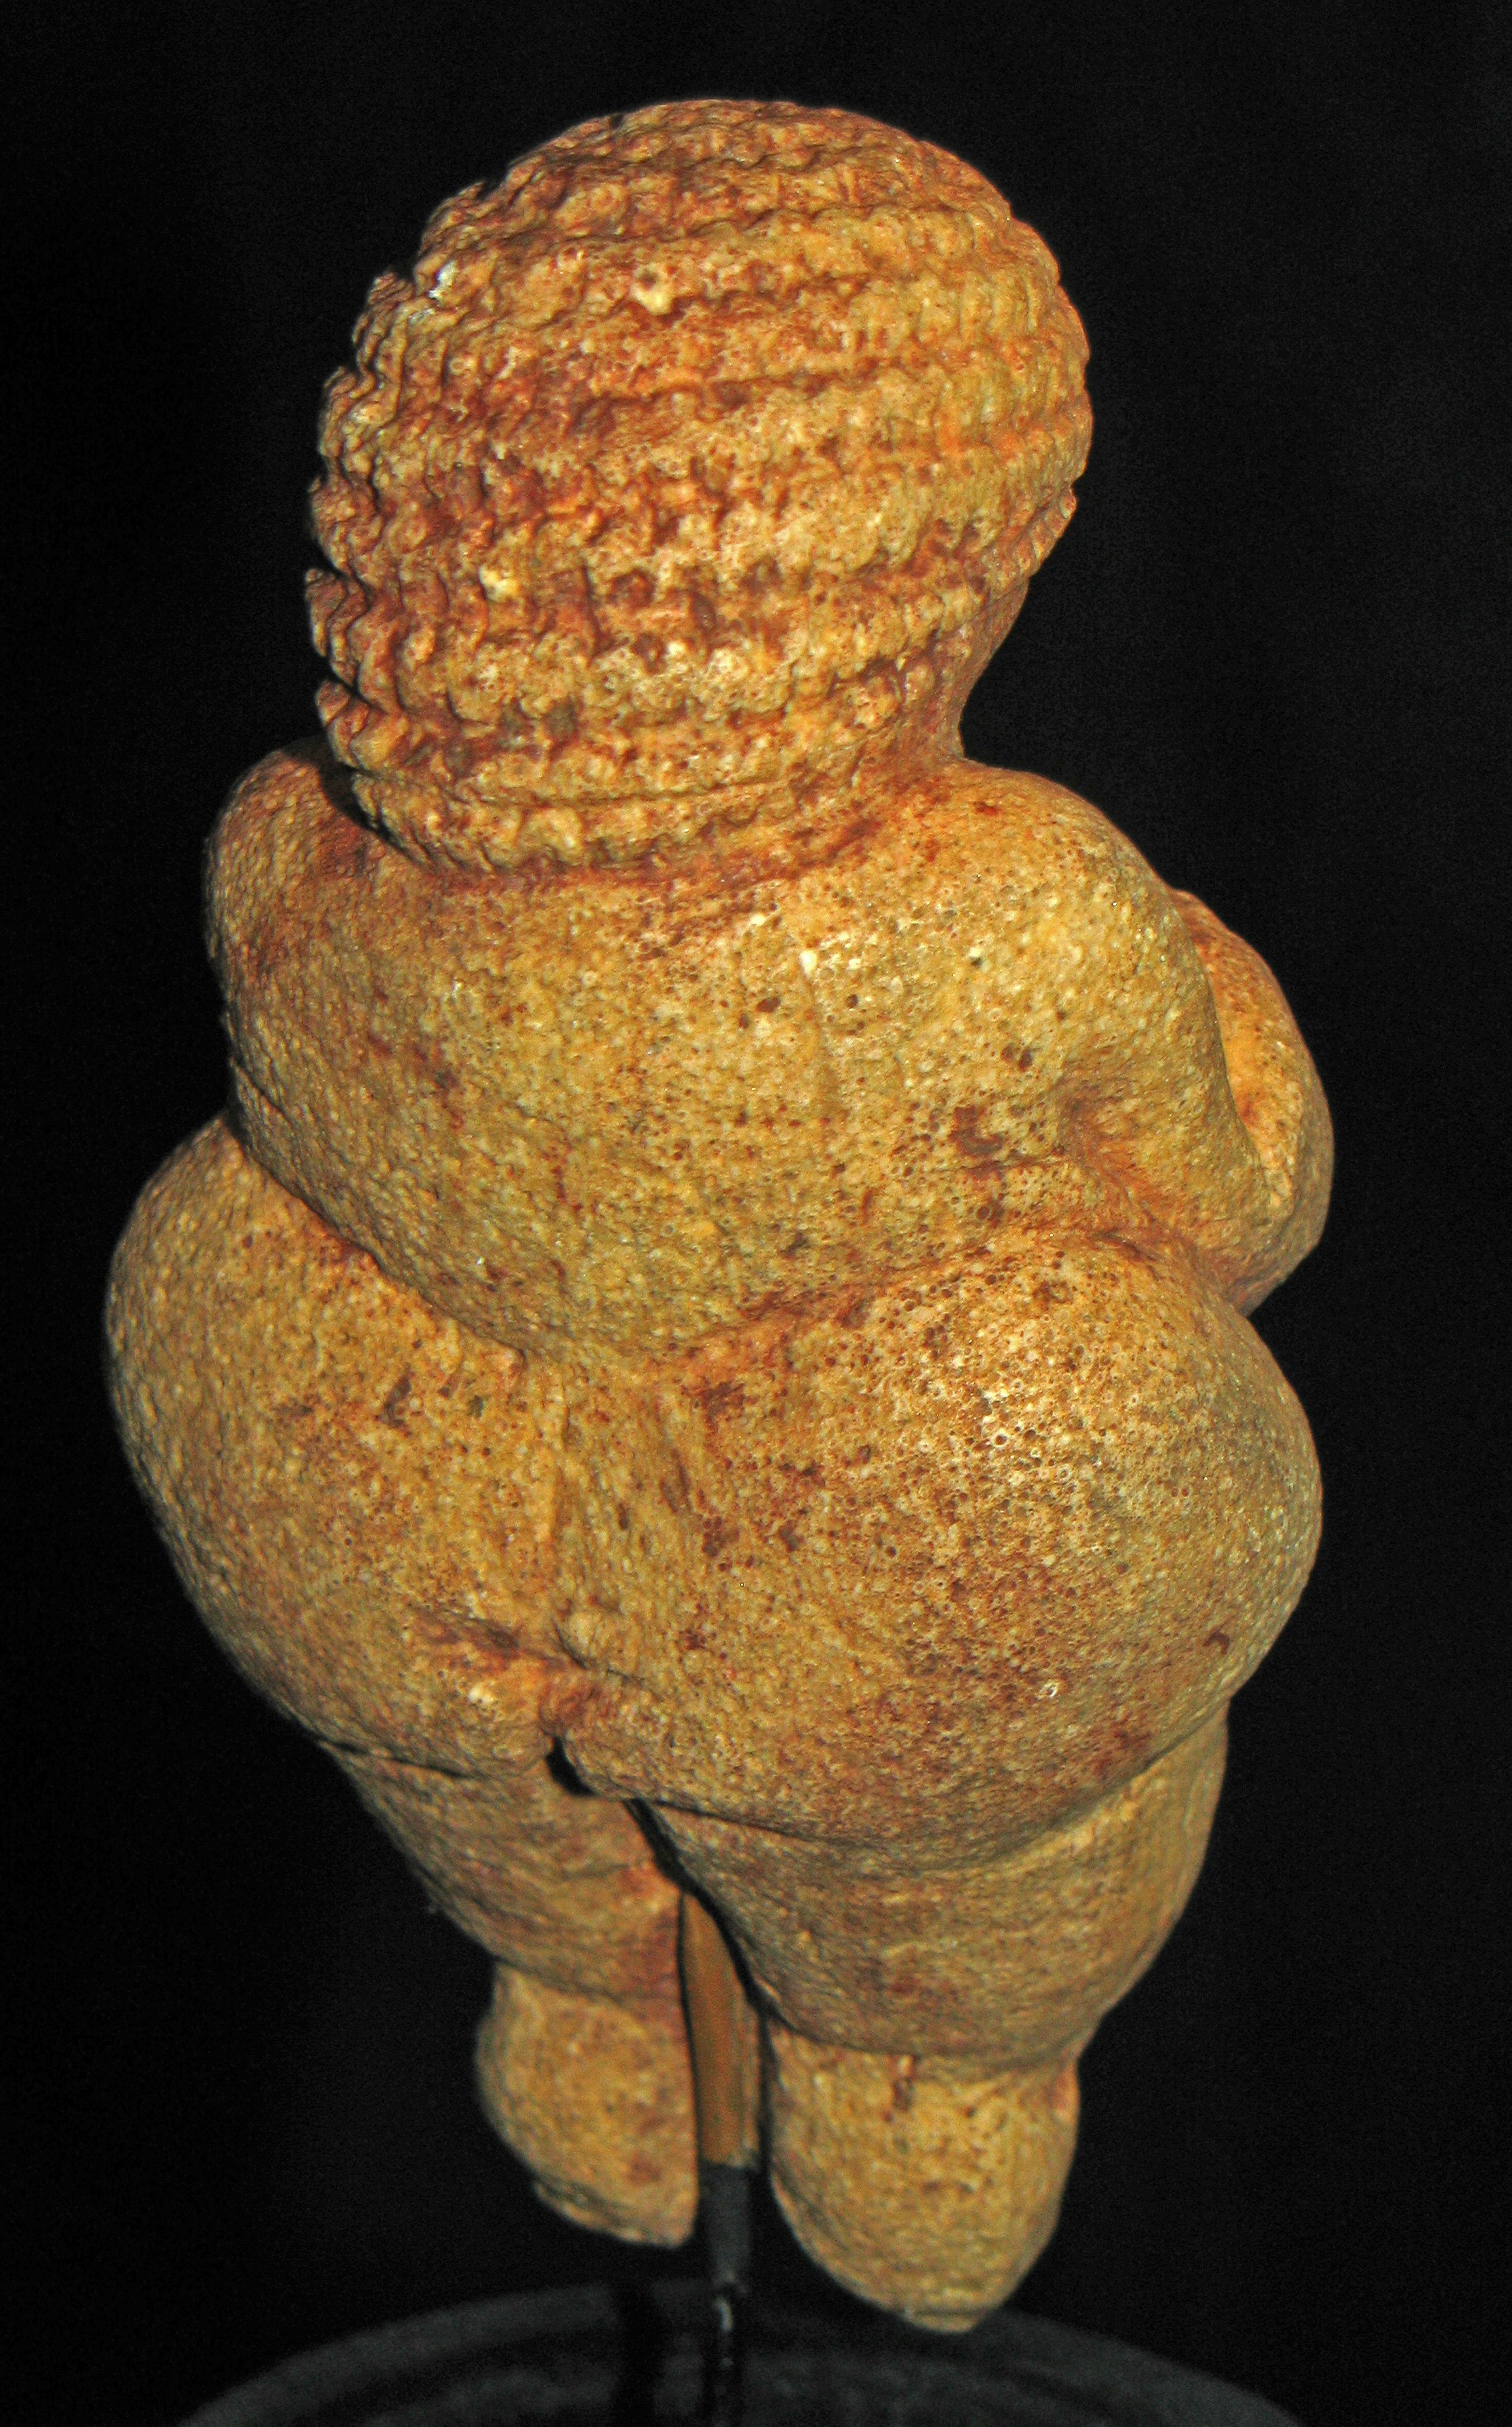 the venus of willendorf Venus of willendorf is named after the site in austria where it was unearthed [6] several similar statuettes and other forms of art have been discovered, and they.